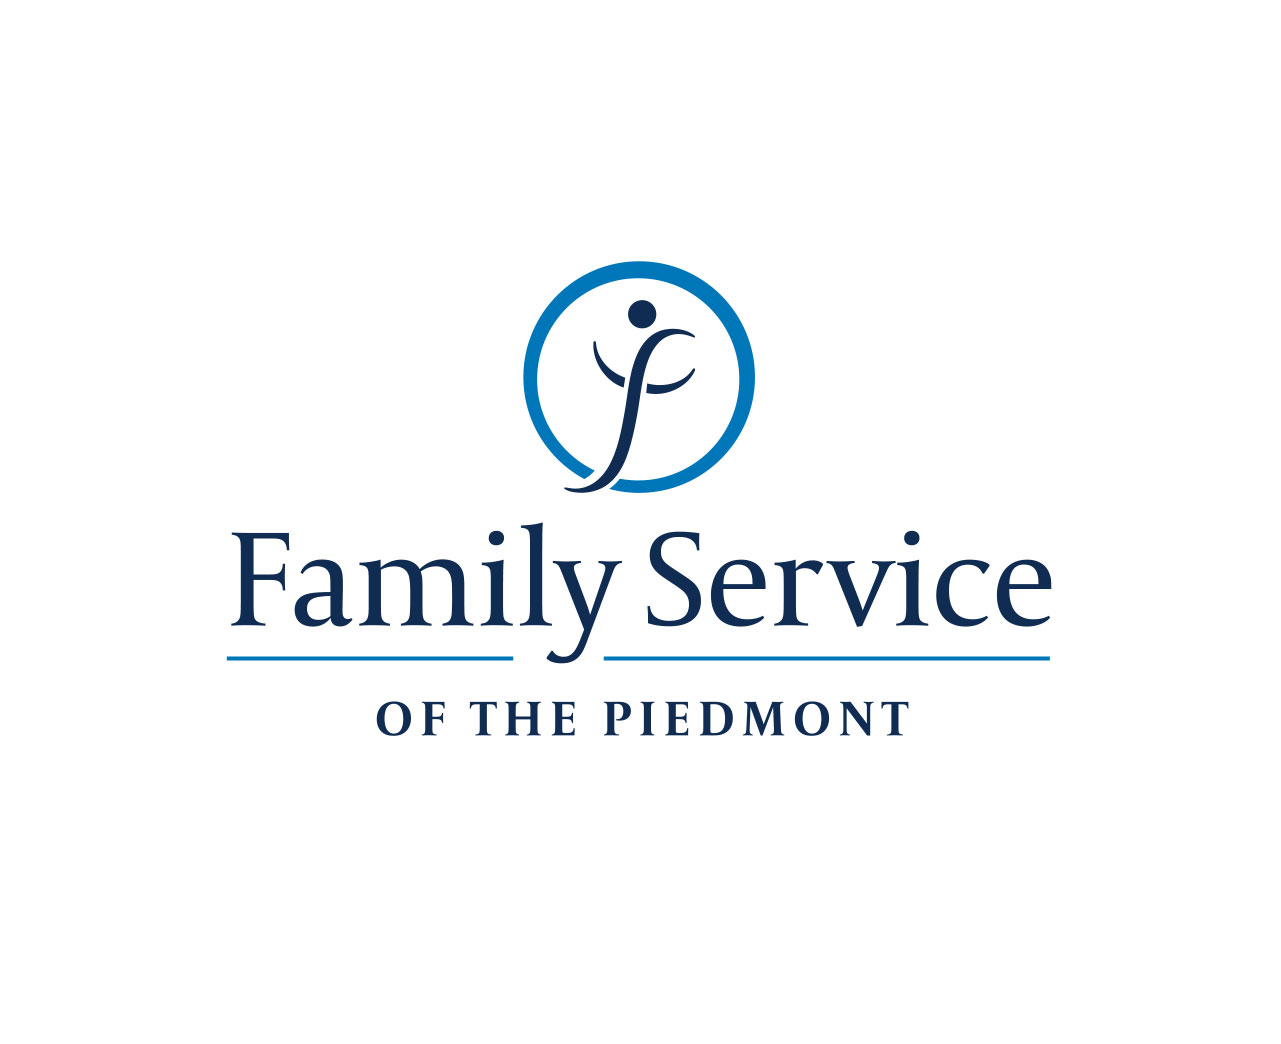 Family Service of the Piedmont Logo Development and Branding